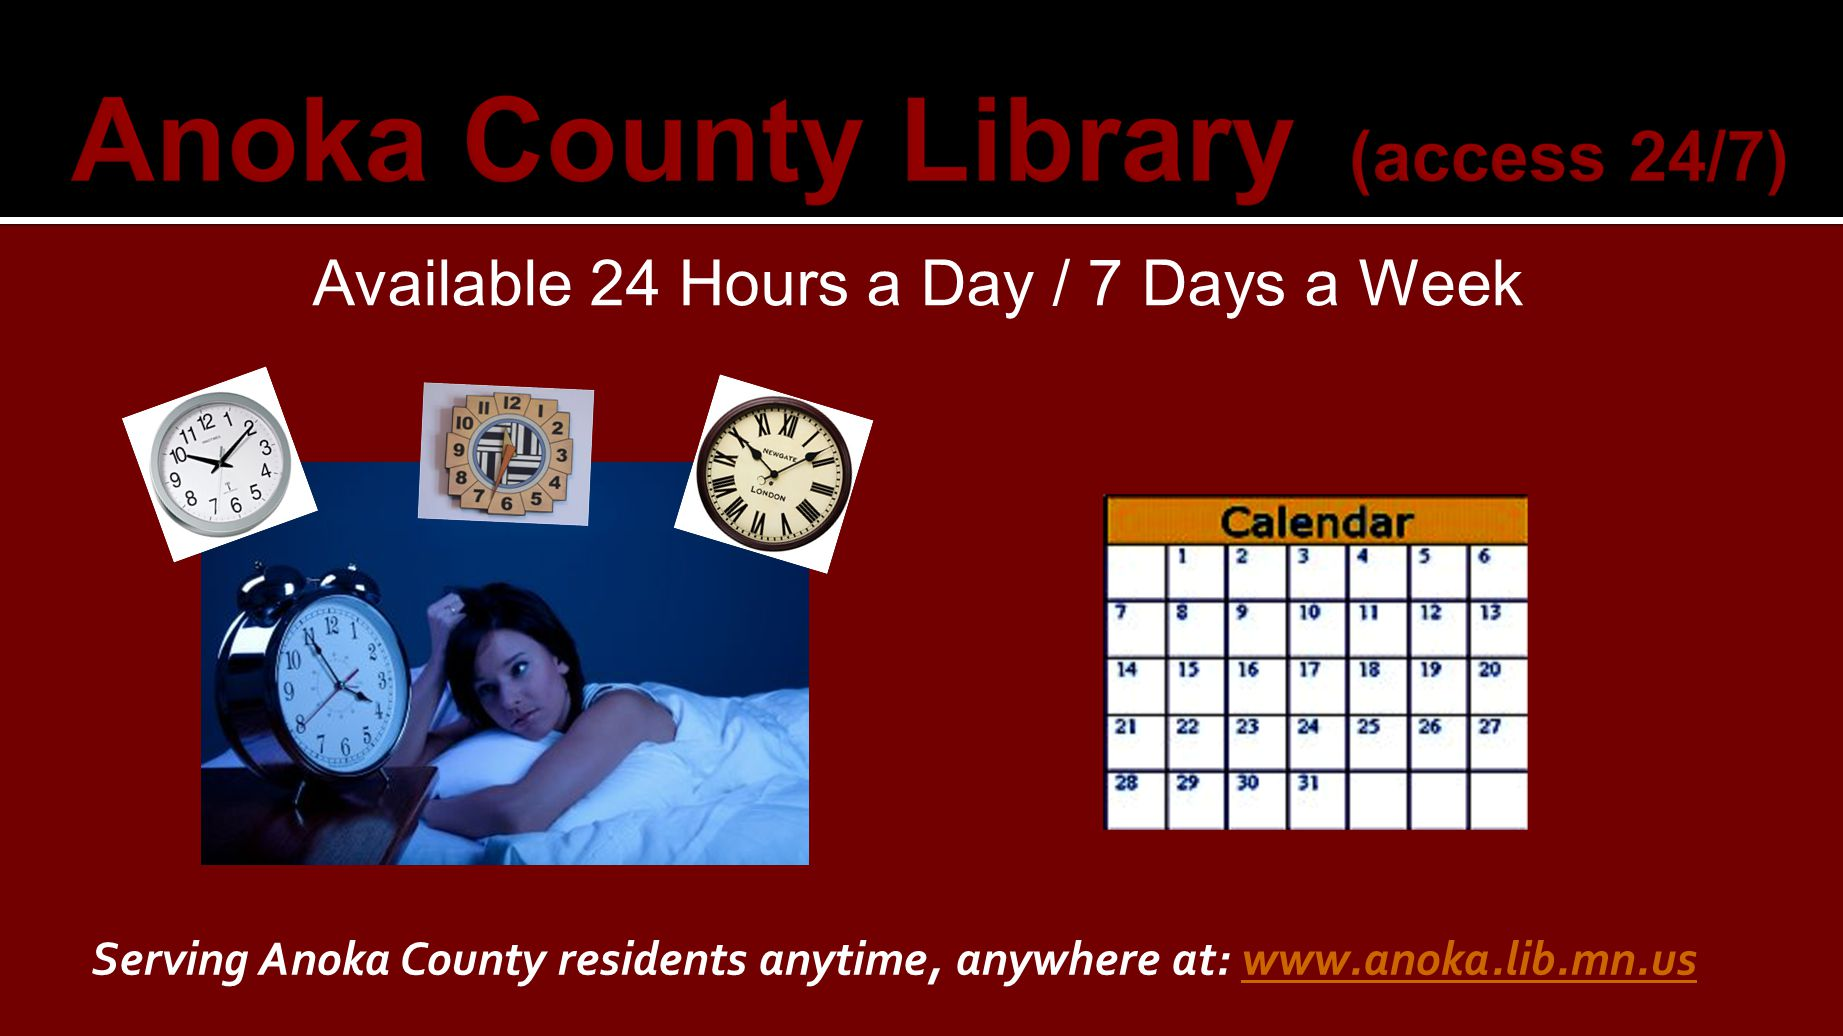 Available 24 Hours a Day / 7 Days a Week Serving Anoka County residents anytime, anywhere at: www.anoka.lib.mn.uswww.anoka.lib.mn.us